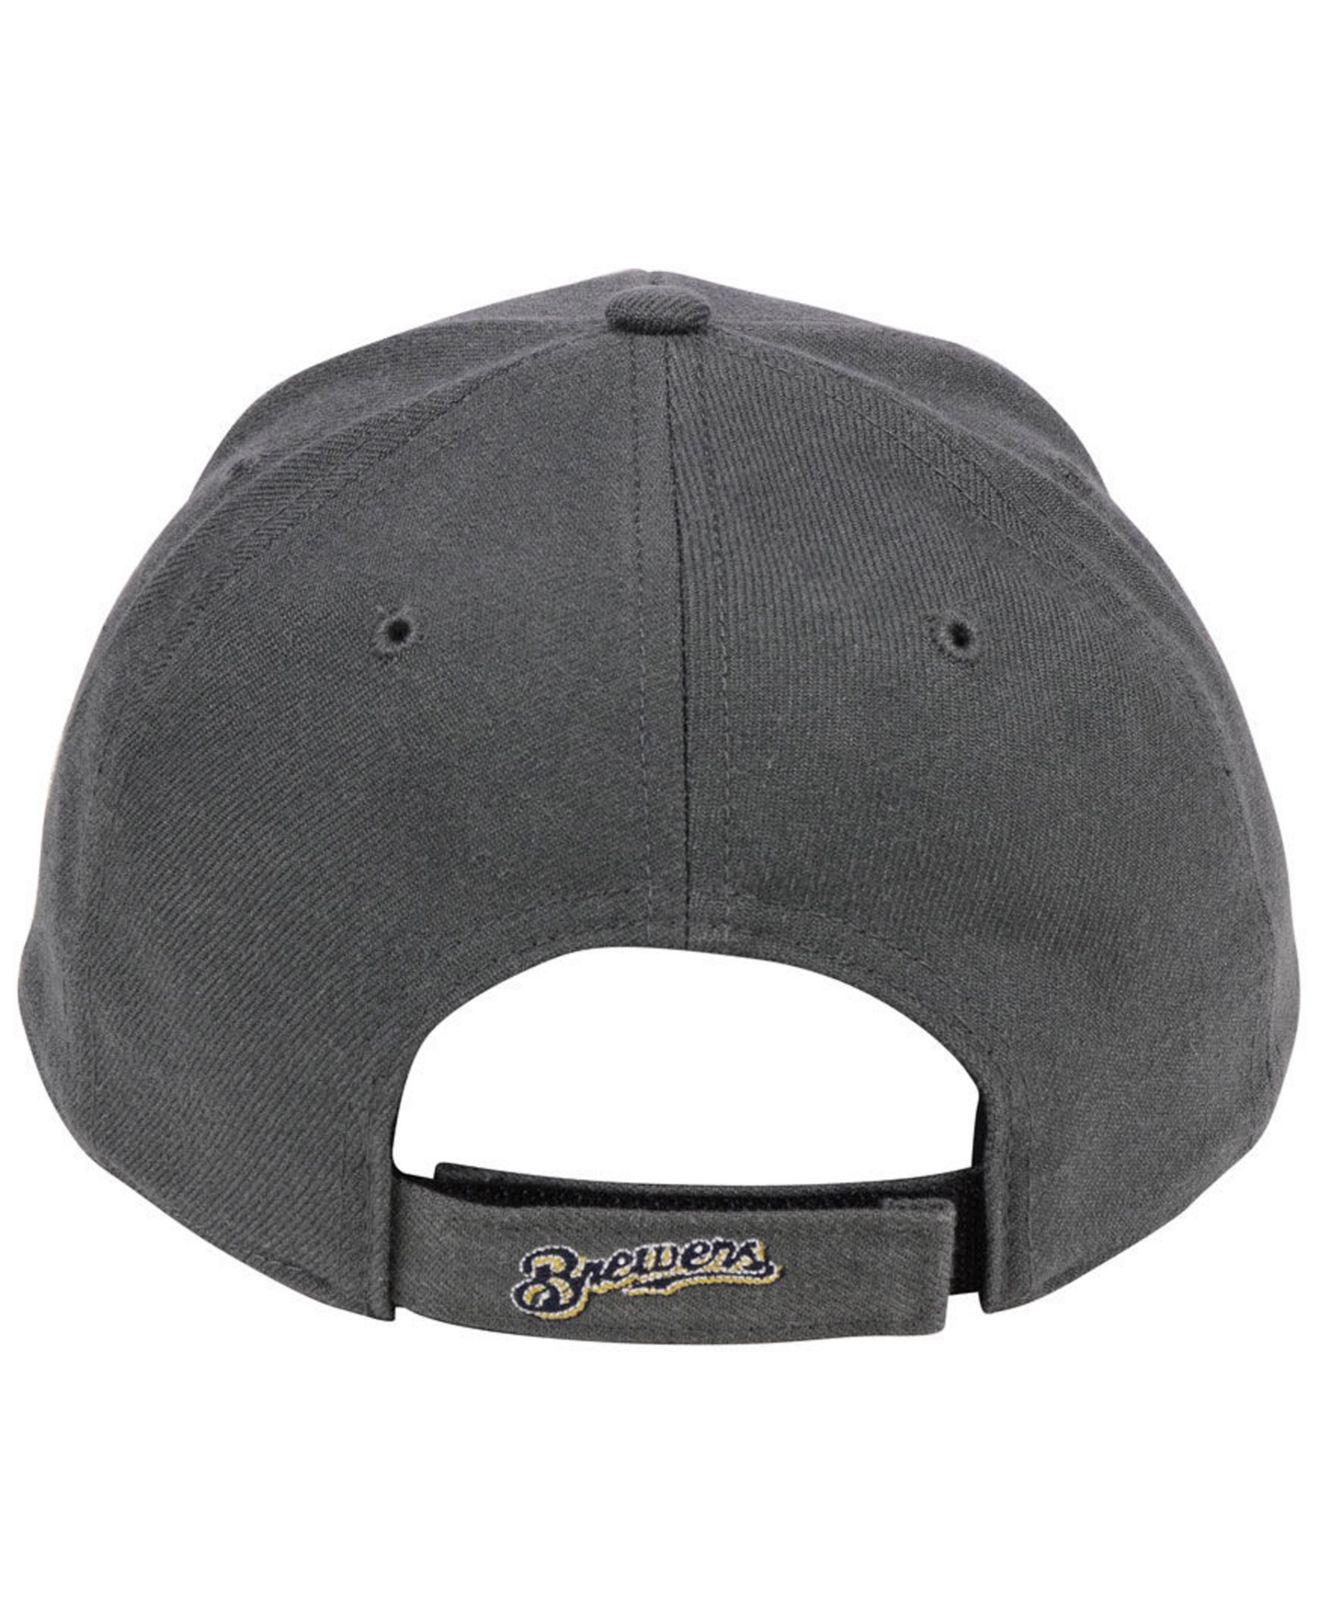 best service 2992e 97524 canada 47 brand 2tone charcoal black pop mvp cap lyst 725aa 01b68  best  price gallery. previously sold at macys mens baseball caps cc011 131bd